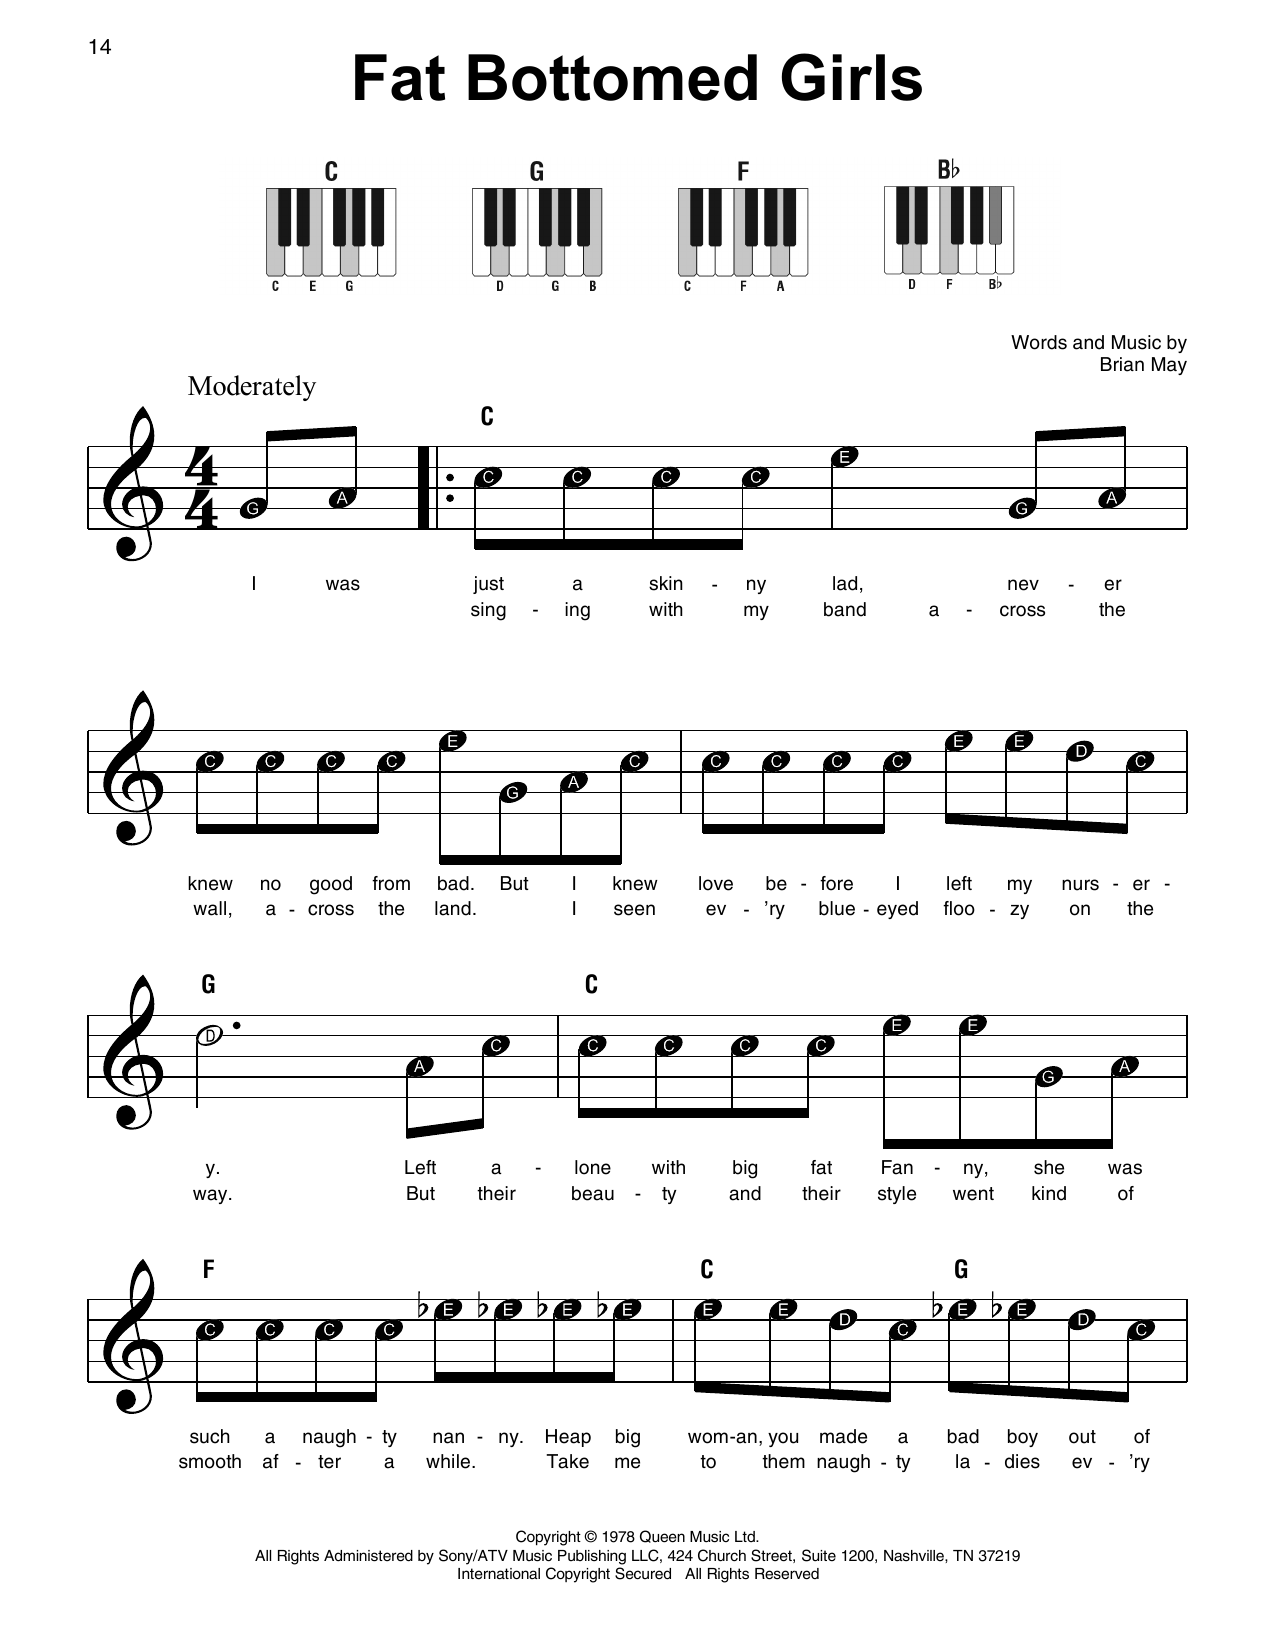 picture relating to All of Me Easy Piano Sheet Music Free Printable identify Queen Pounds Bottomed Females Sheet Audio Notes, Chords Down load Printable Tremendous Straightforward Piano - SKU: 415307